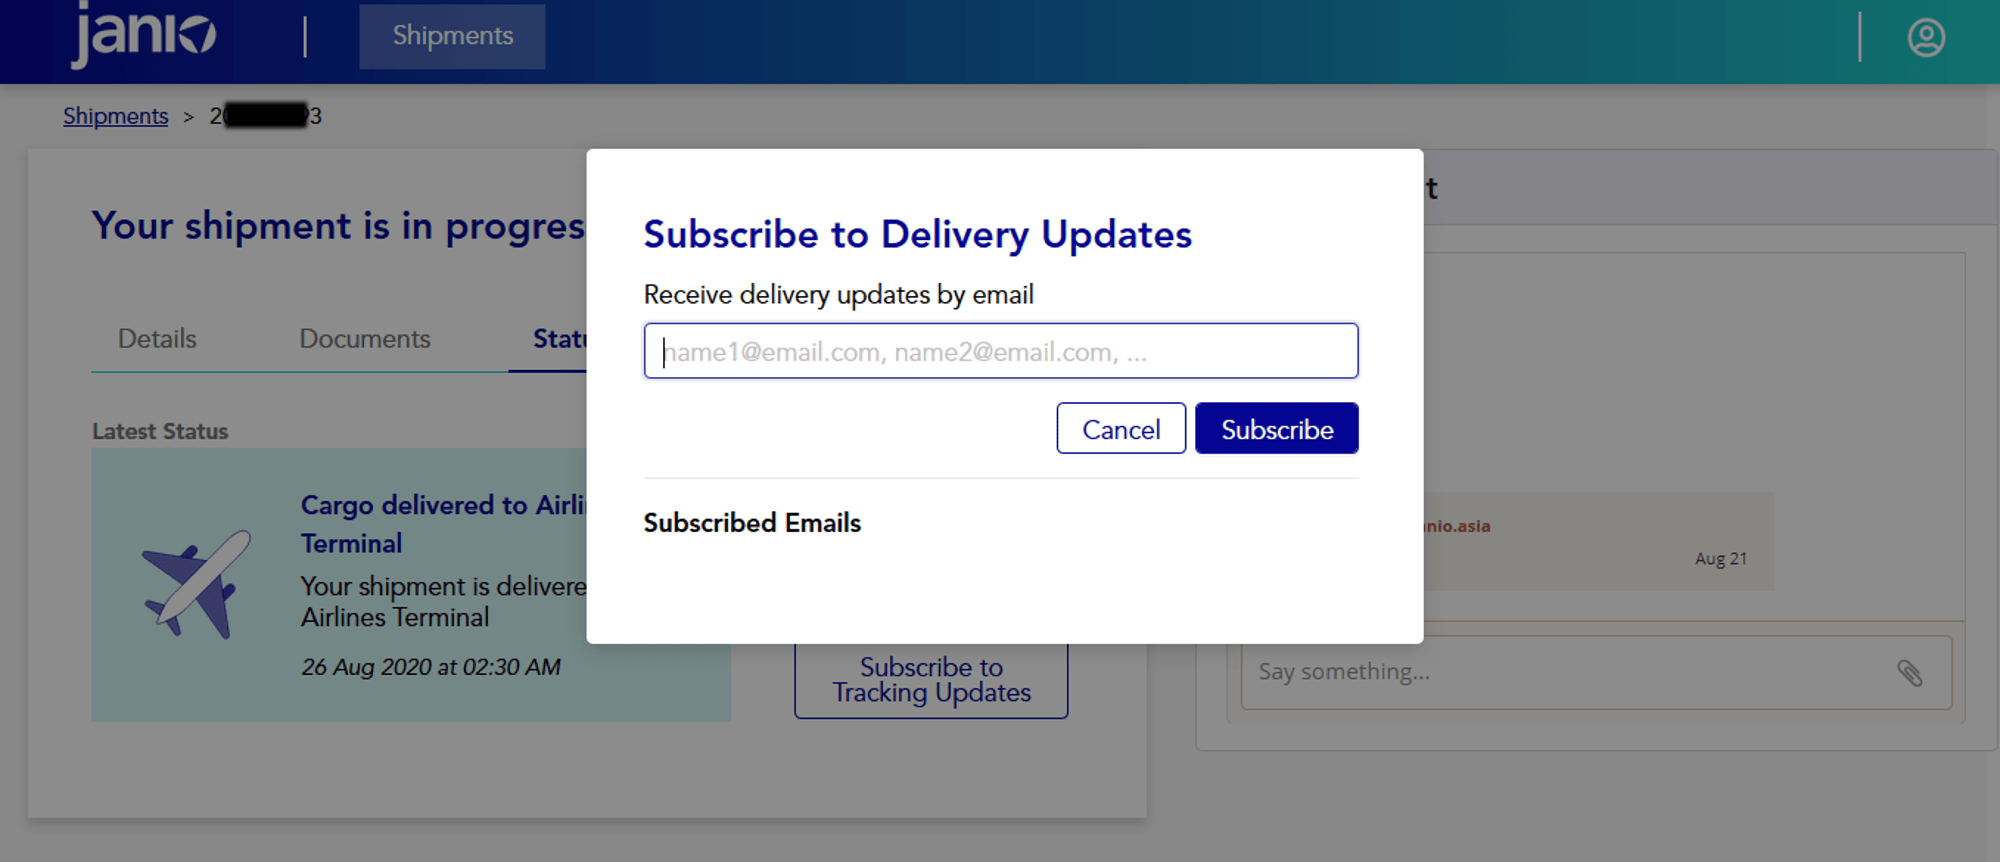 Janio's B2B Merchant Portal - subscribe for emails on status updates